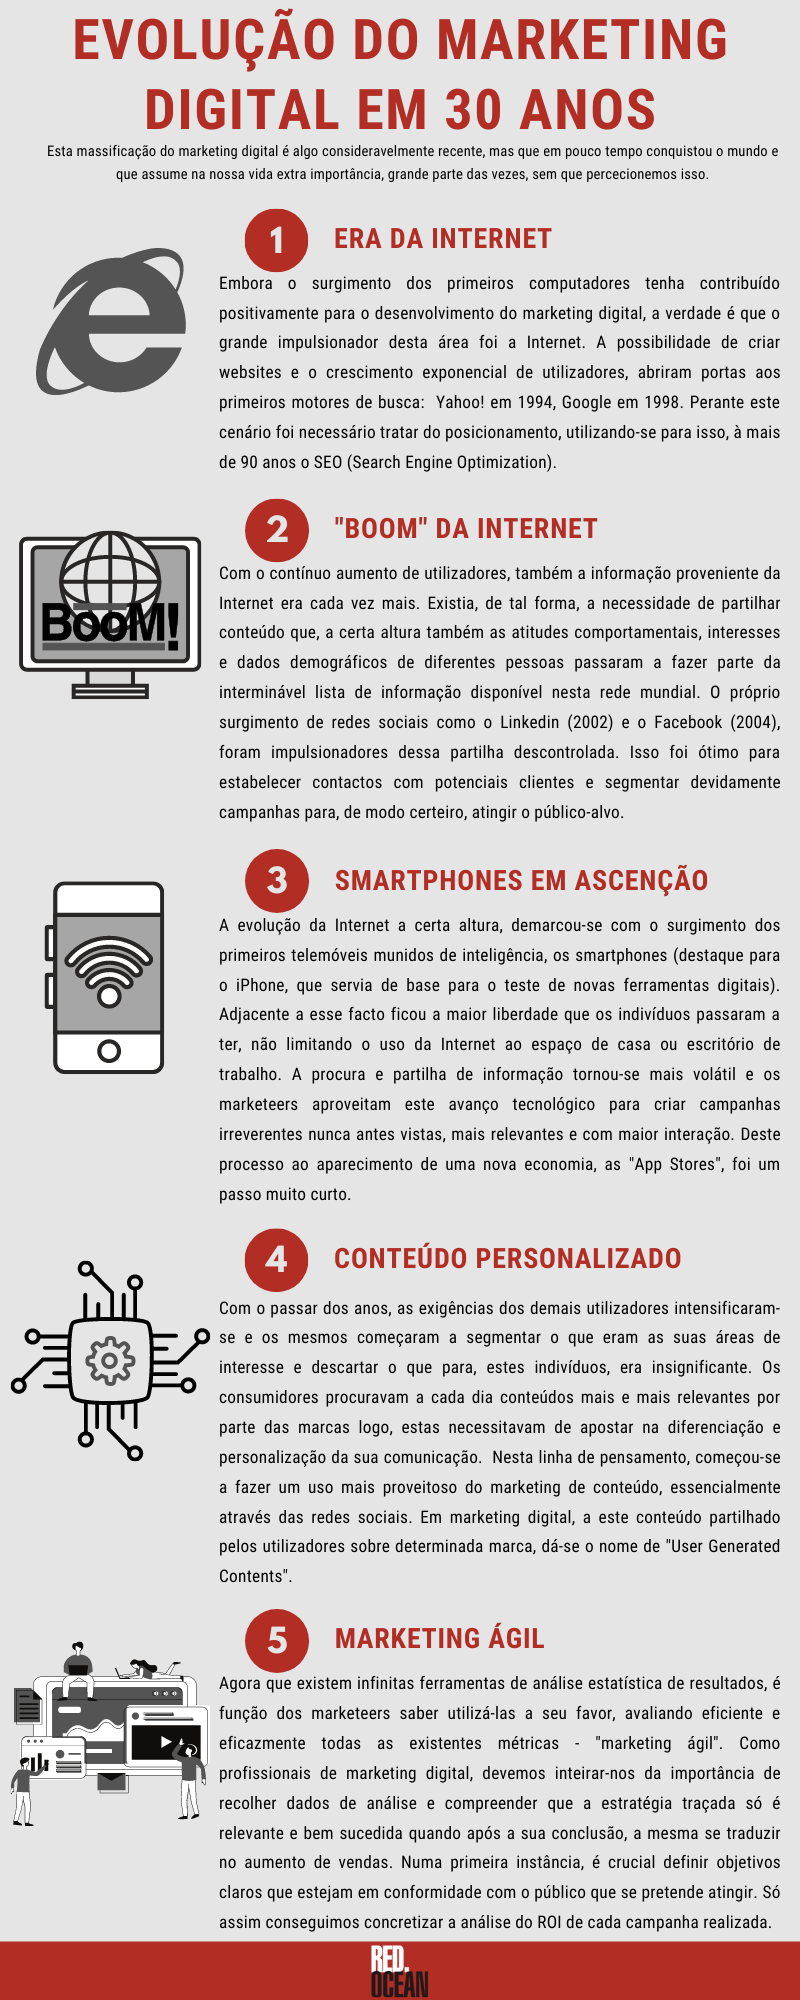 infografia_evolucao marketing digital trinta anos